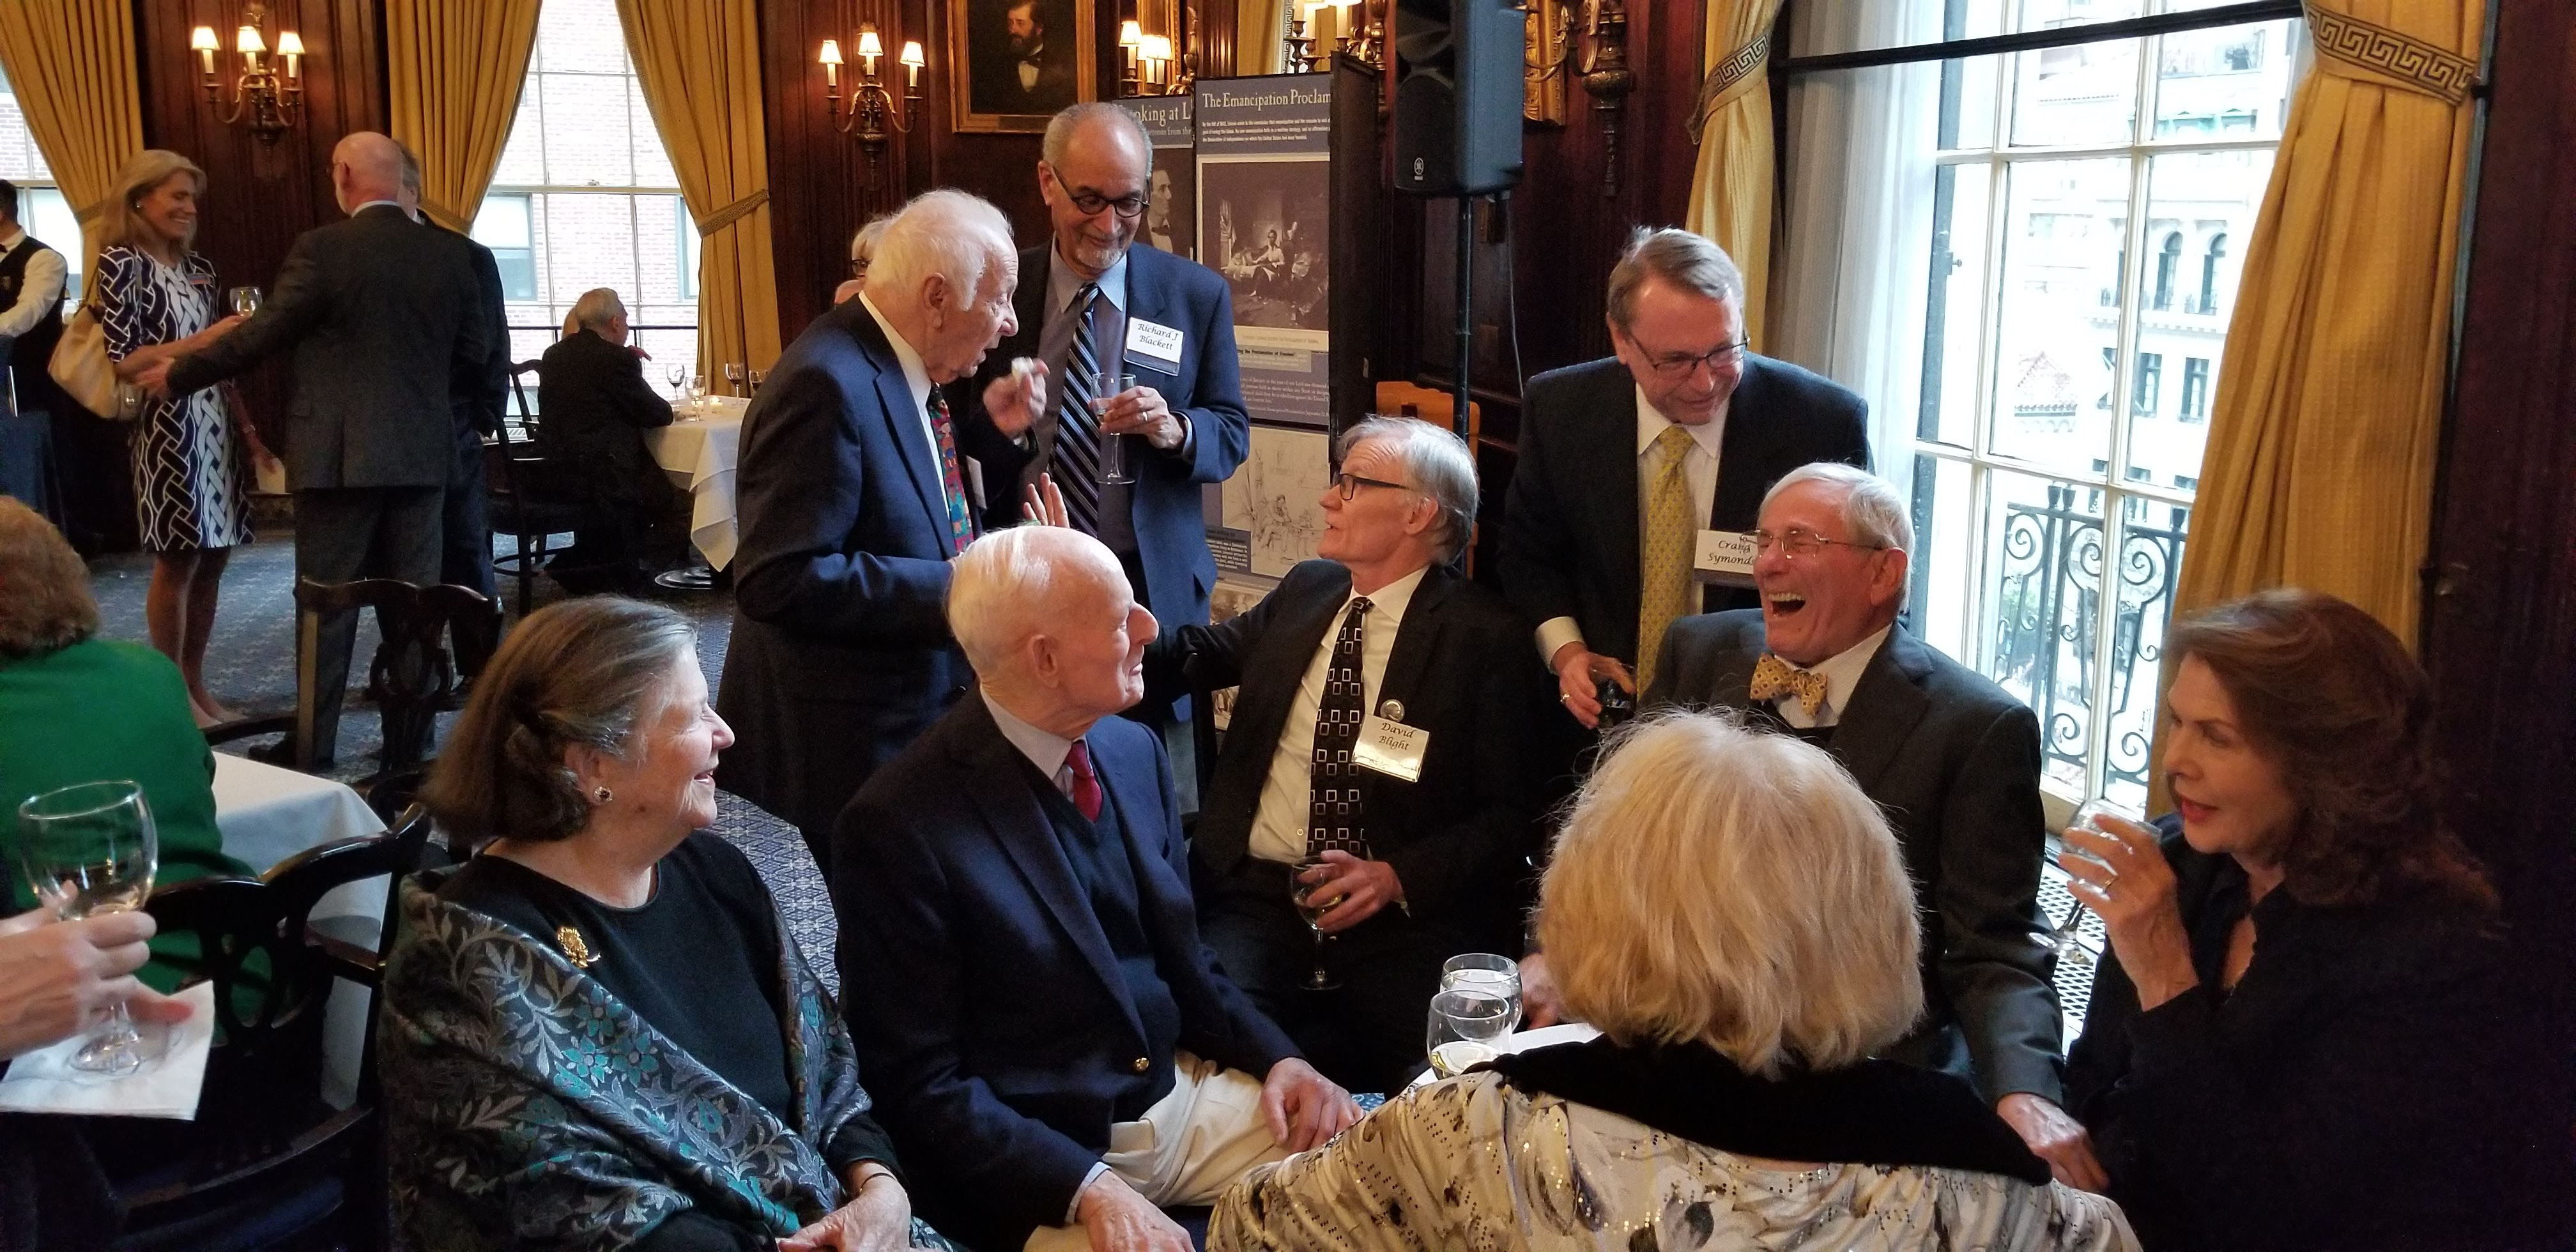 Louise Lehrman, Lewis E. Lehrman, Richard J. M. Blackett, David Blight, Richard Gilder, and Lois Chiles before the 2019 Lincoln Prize ceremony.